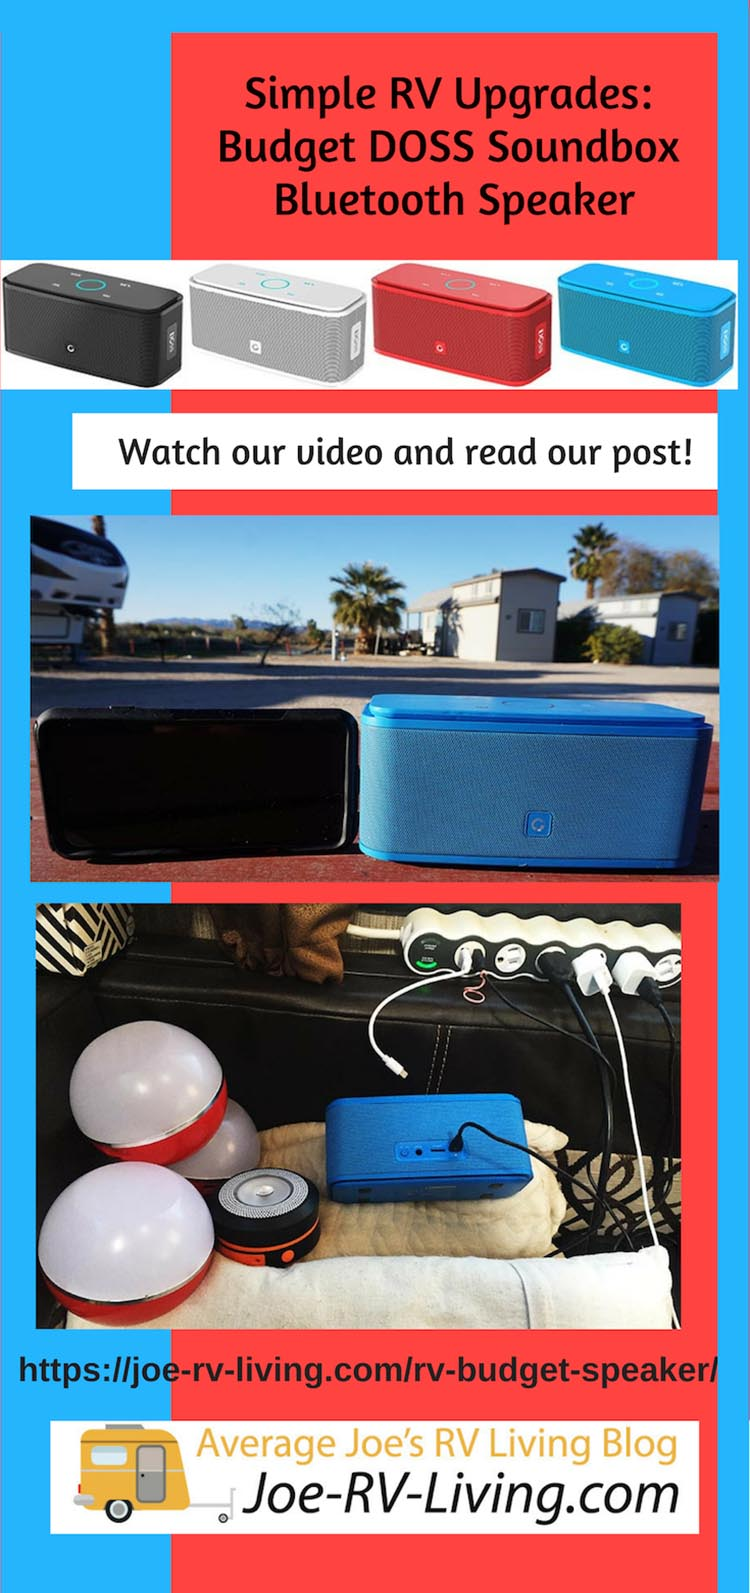 Simple RV Upgrades: Budget DOSS Soundbox Bluetooth Speaker